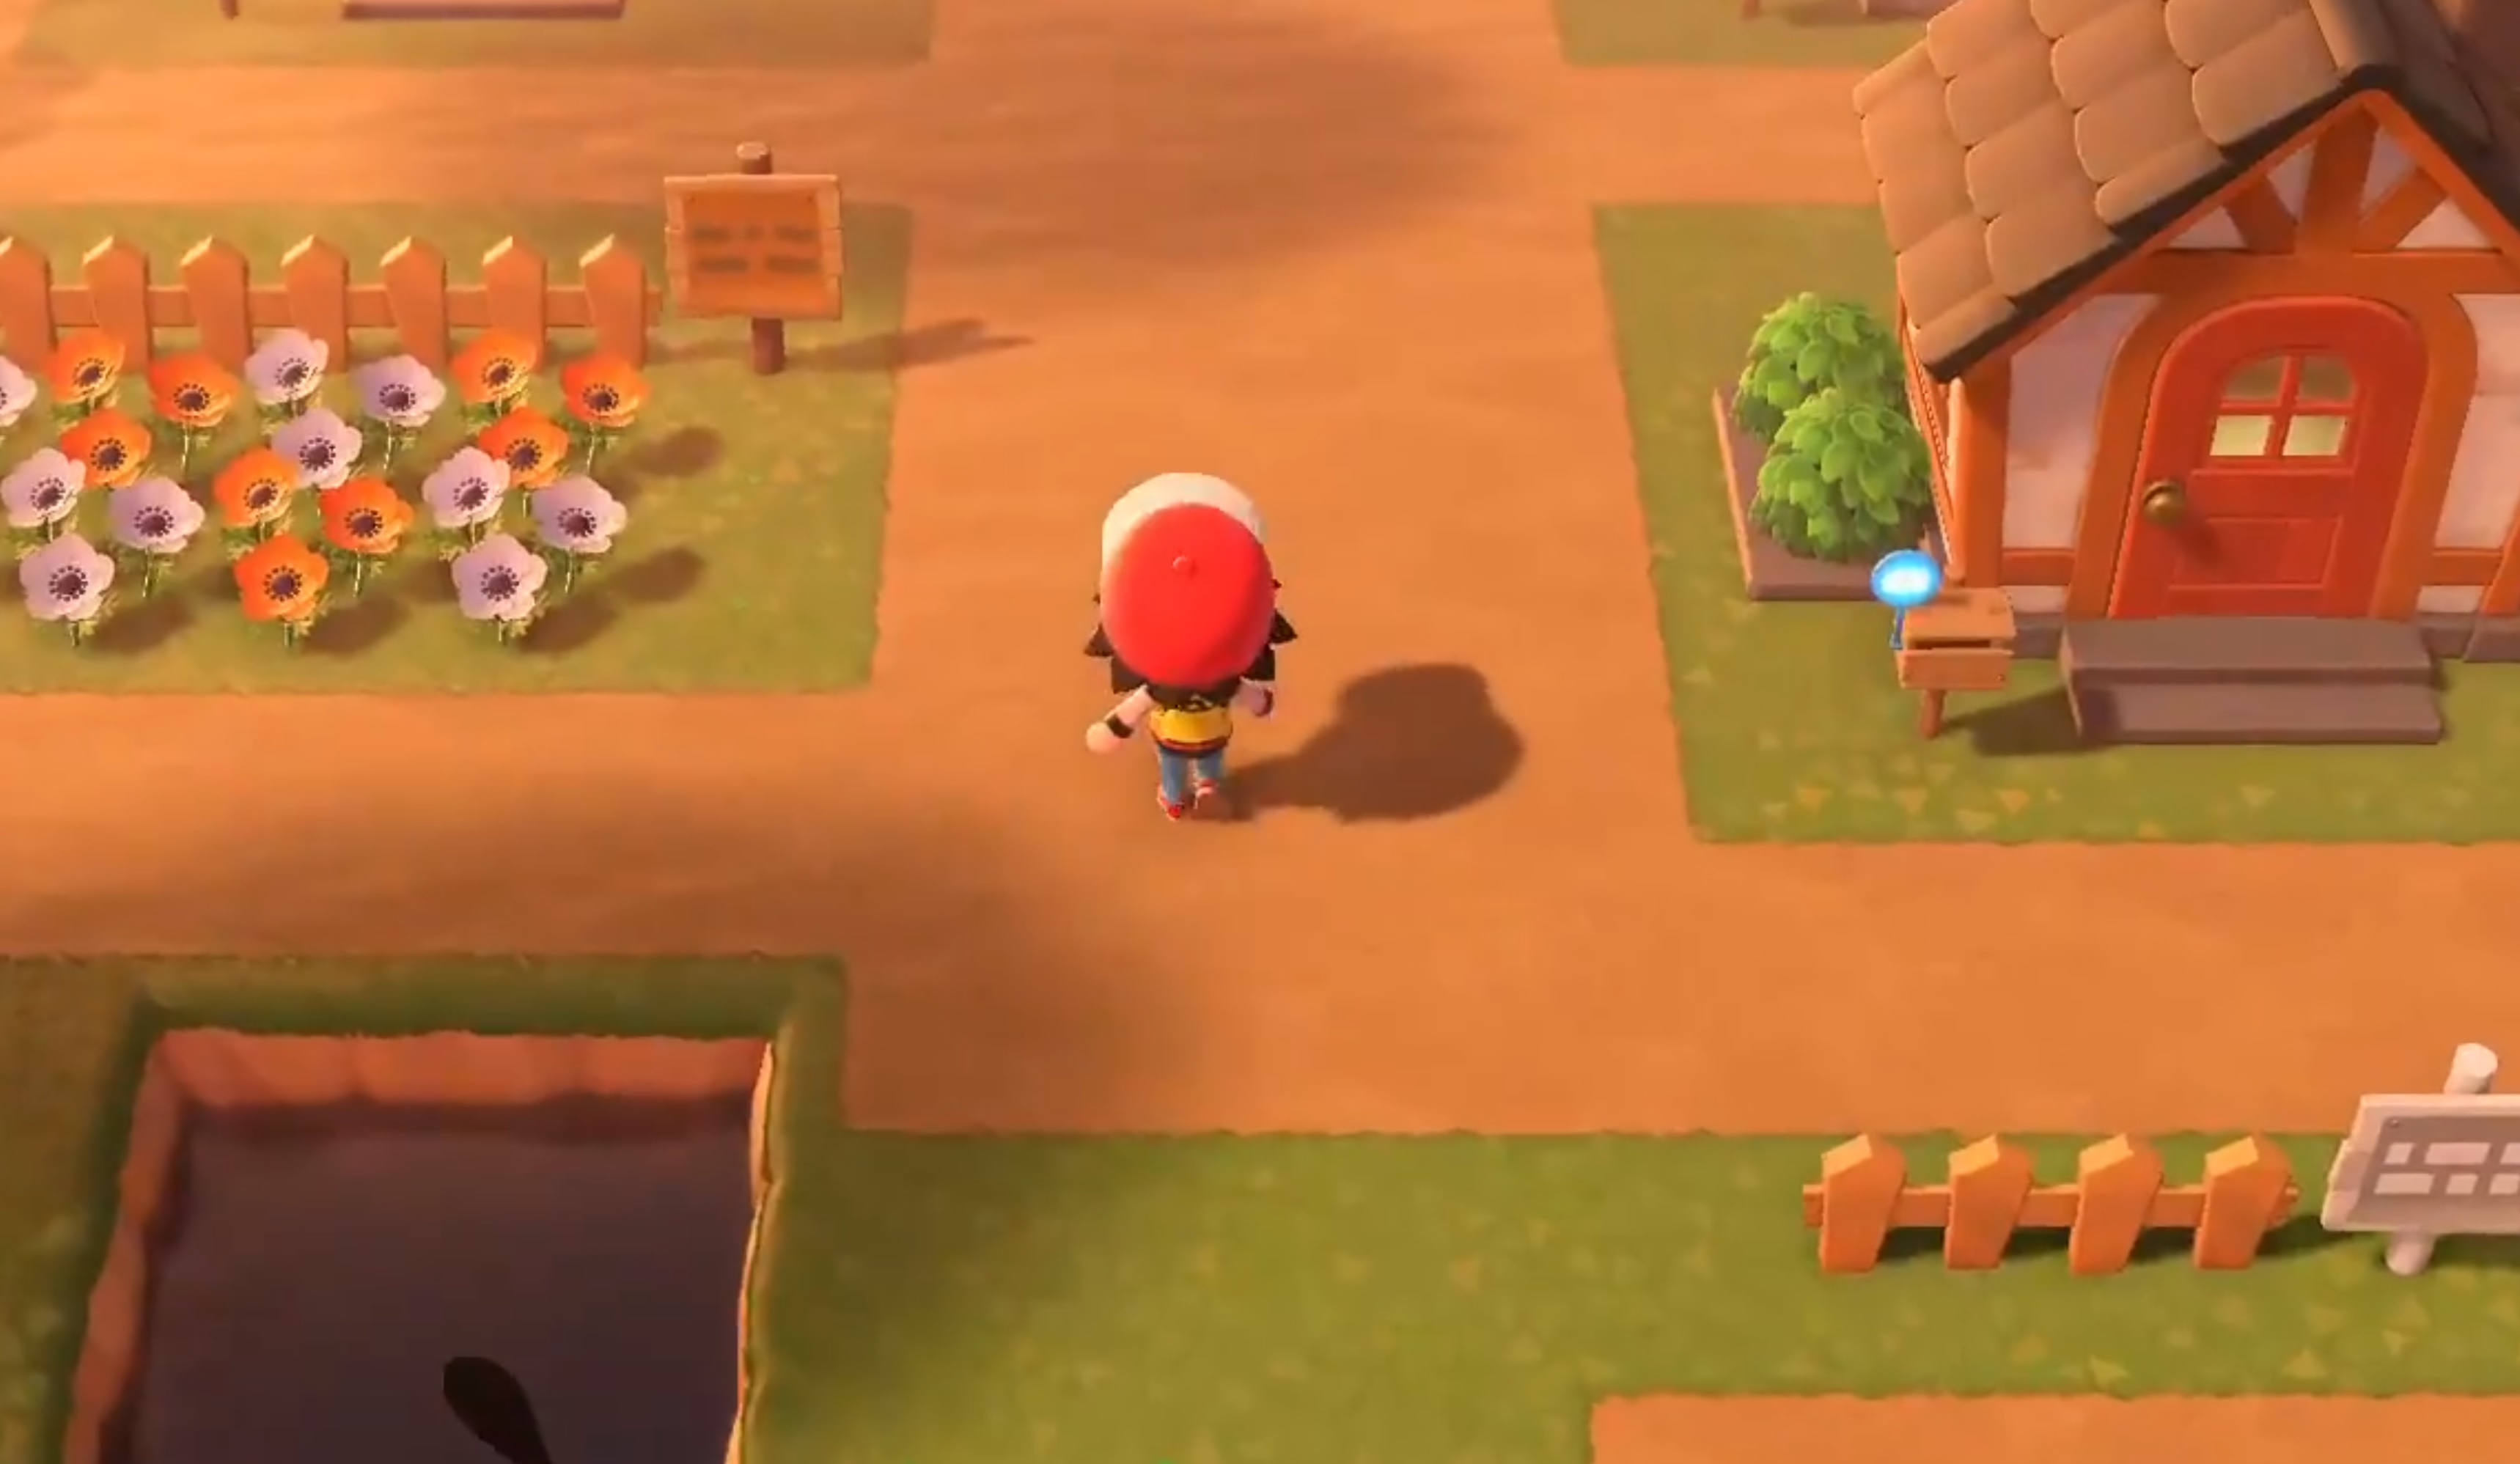 Sure, I'd live in an Animal Crossing version of Pokemon's Palette Town screenshot